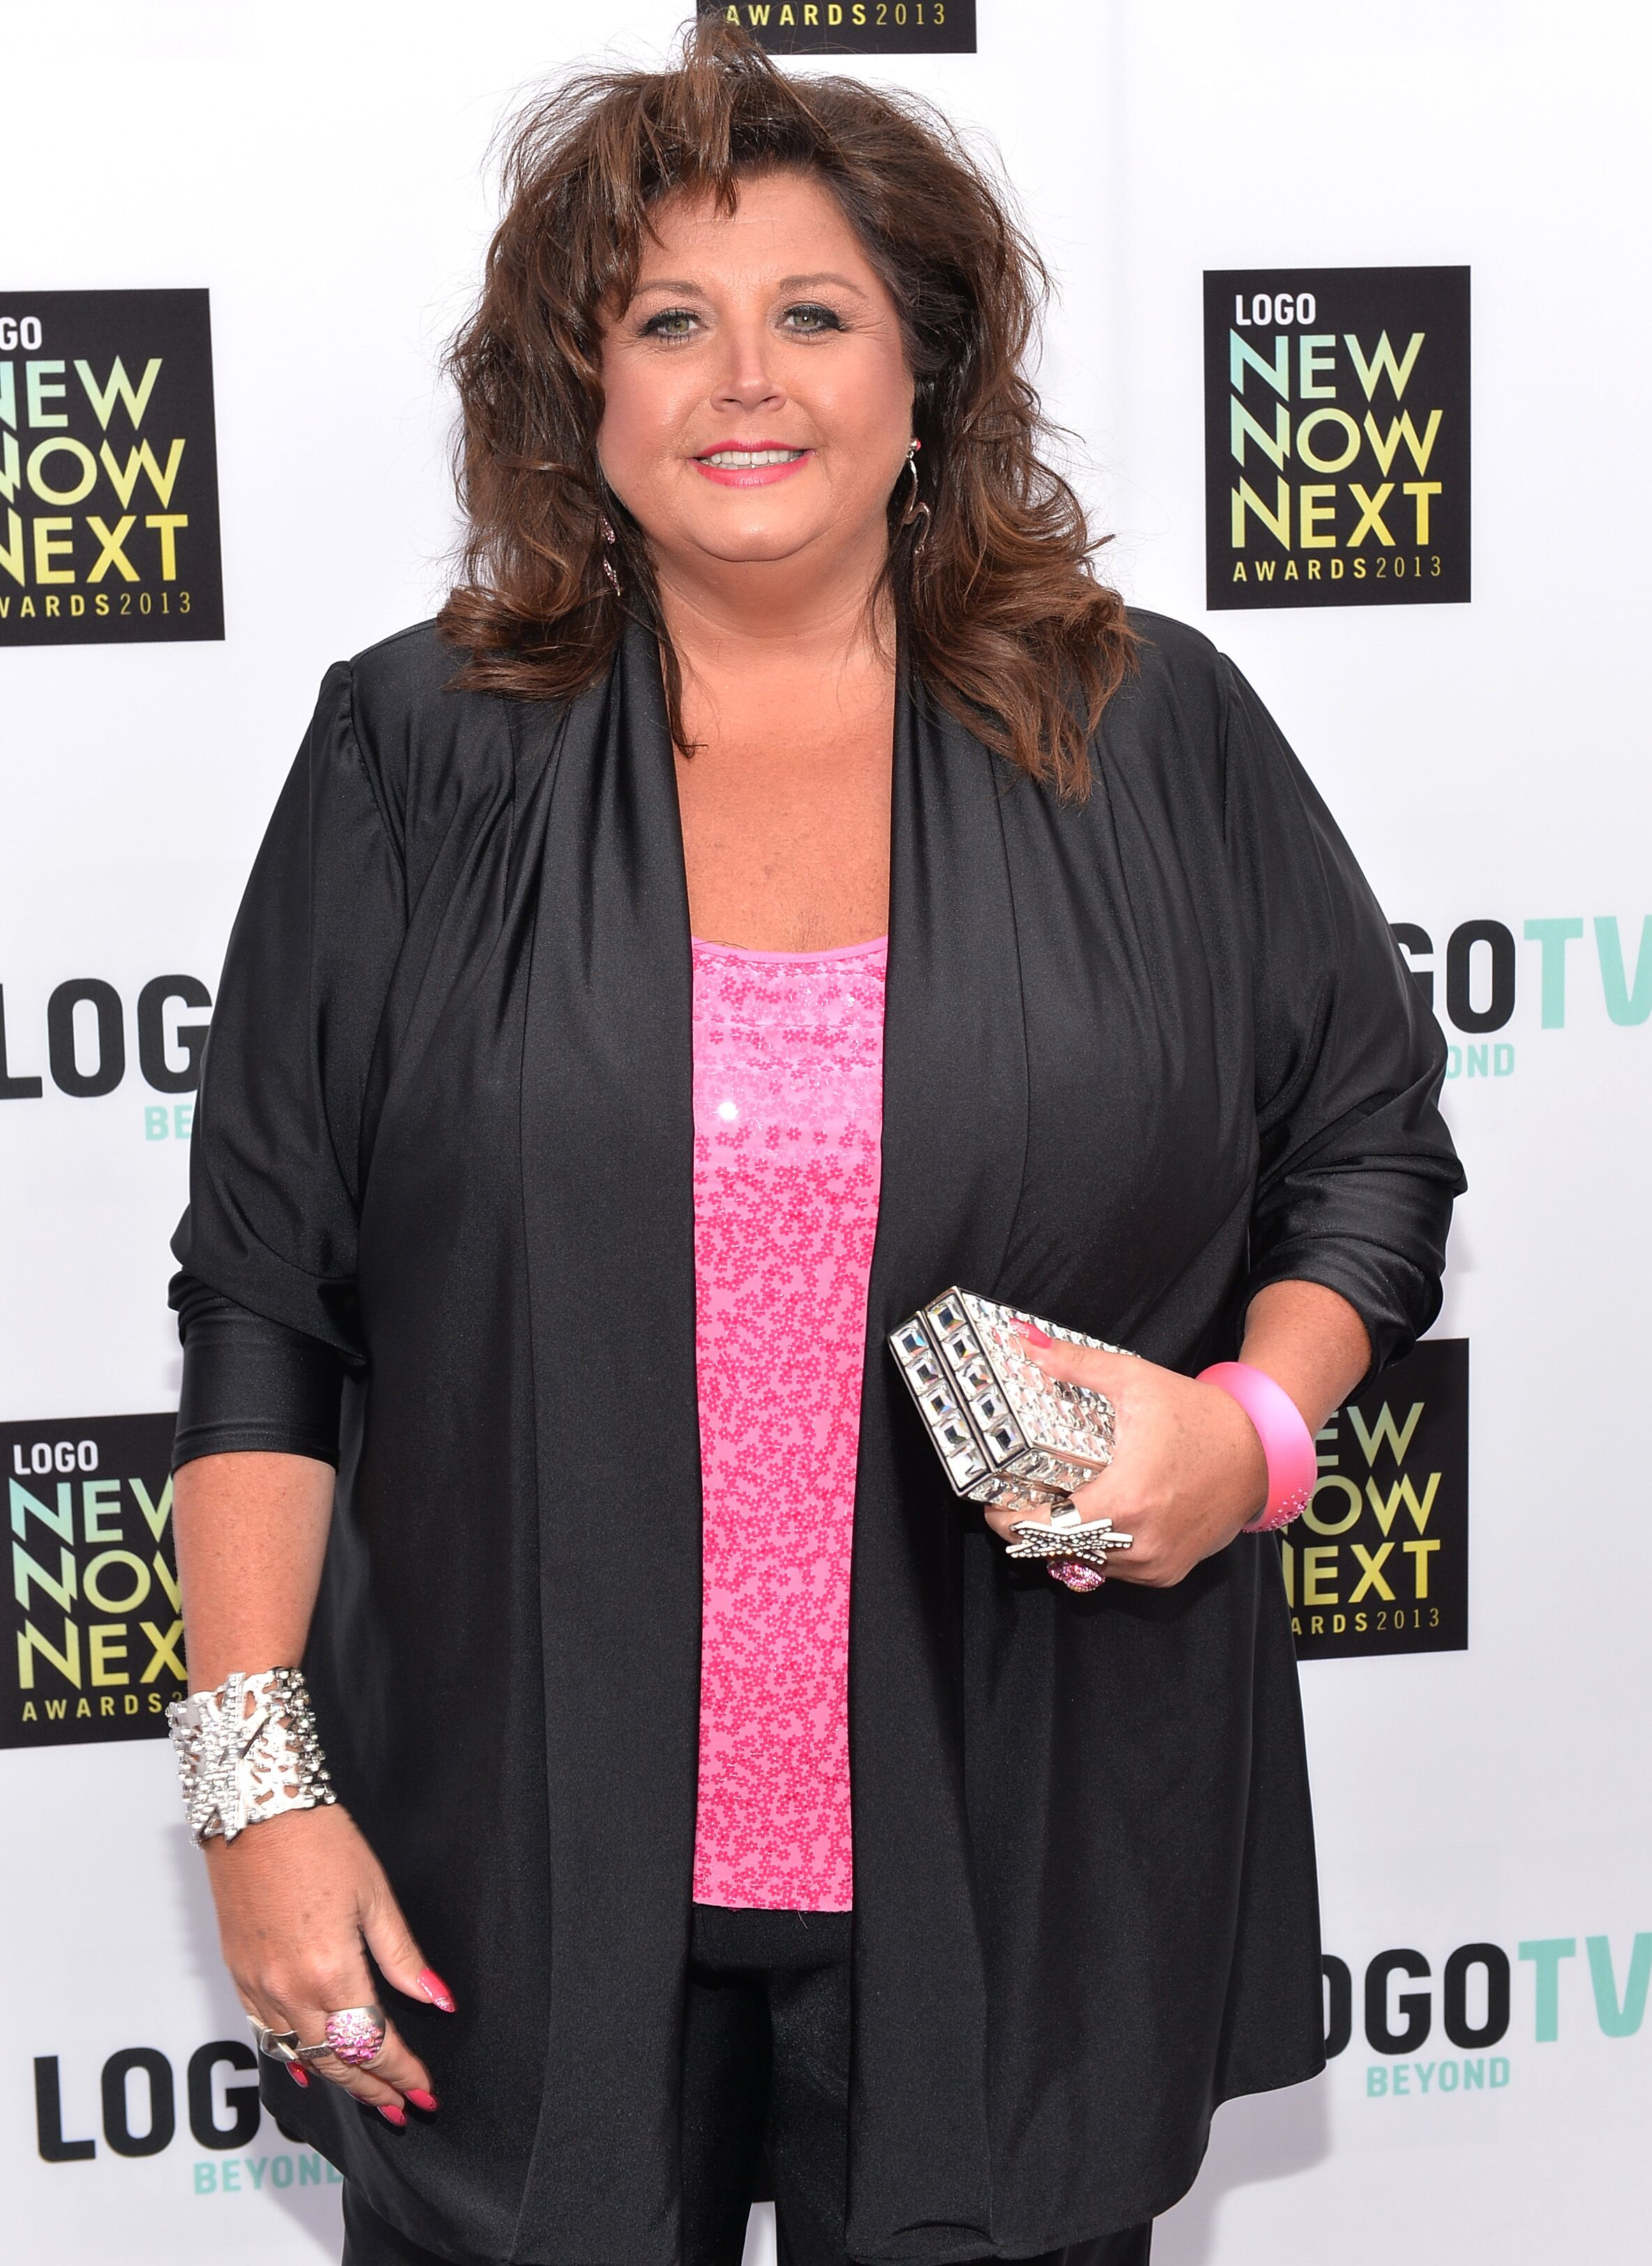 Abby Lee Miller attends the 2013 NewNowNext Awards at The Fonda Theatre | Source: Getty Images